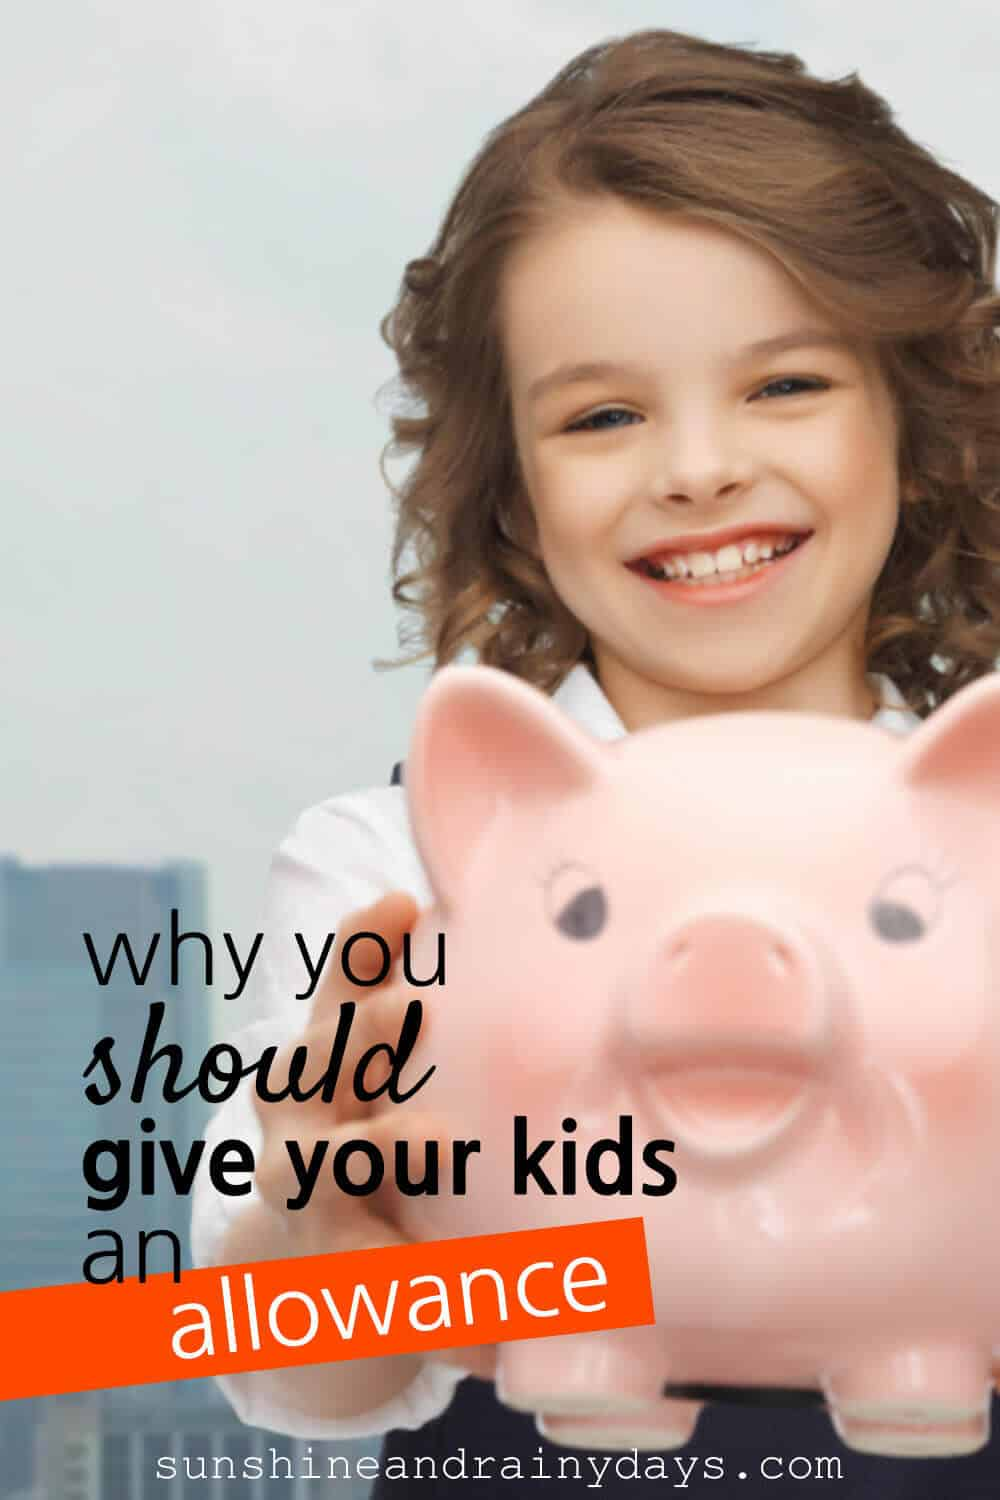 The biggest opposition to kids allowance I hear is: in the real world, you have to work for money. This is true! In the real world, you don't get paid to do chores around the house either. #allowance #kidsallowance